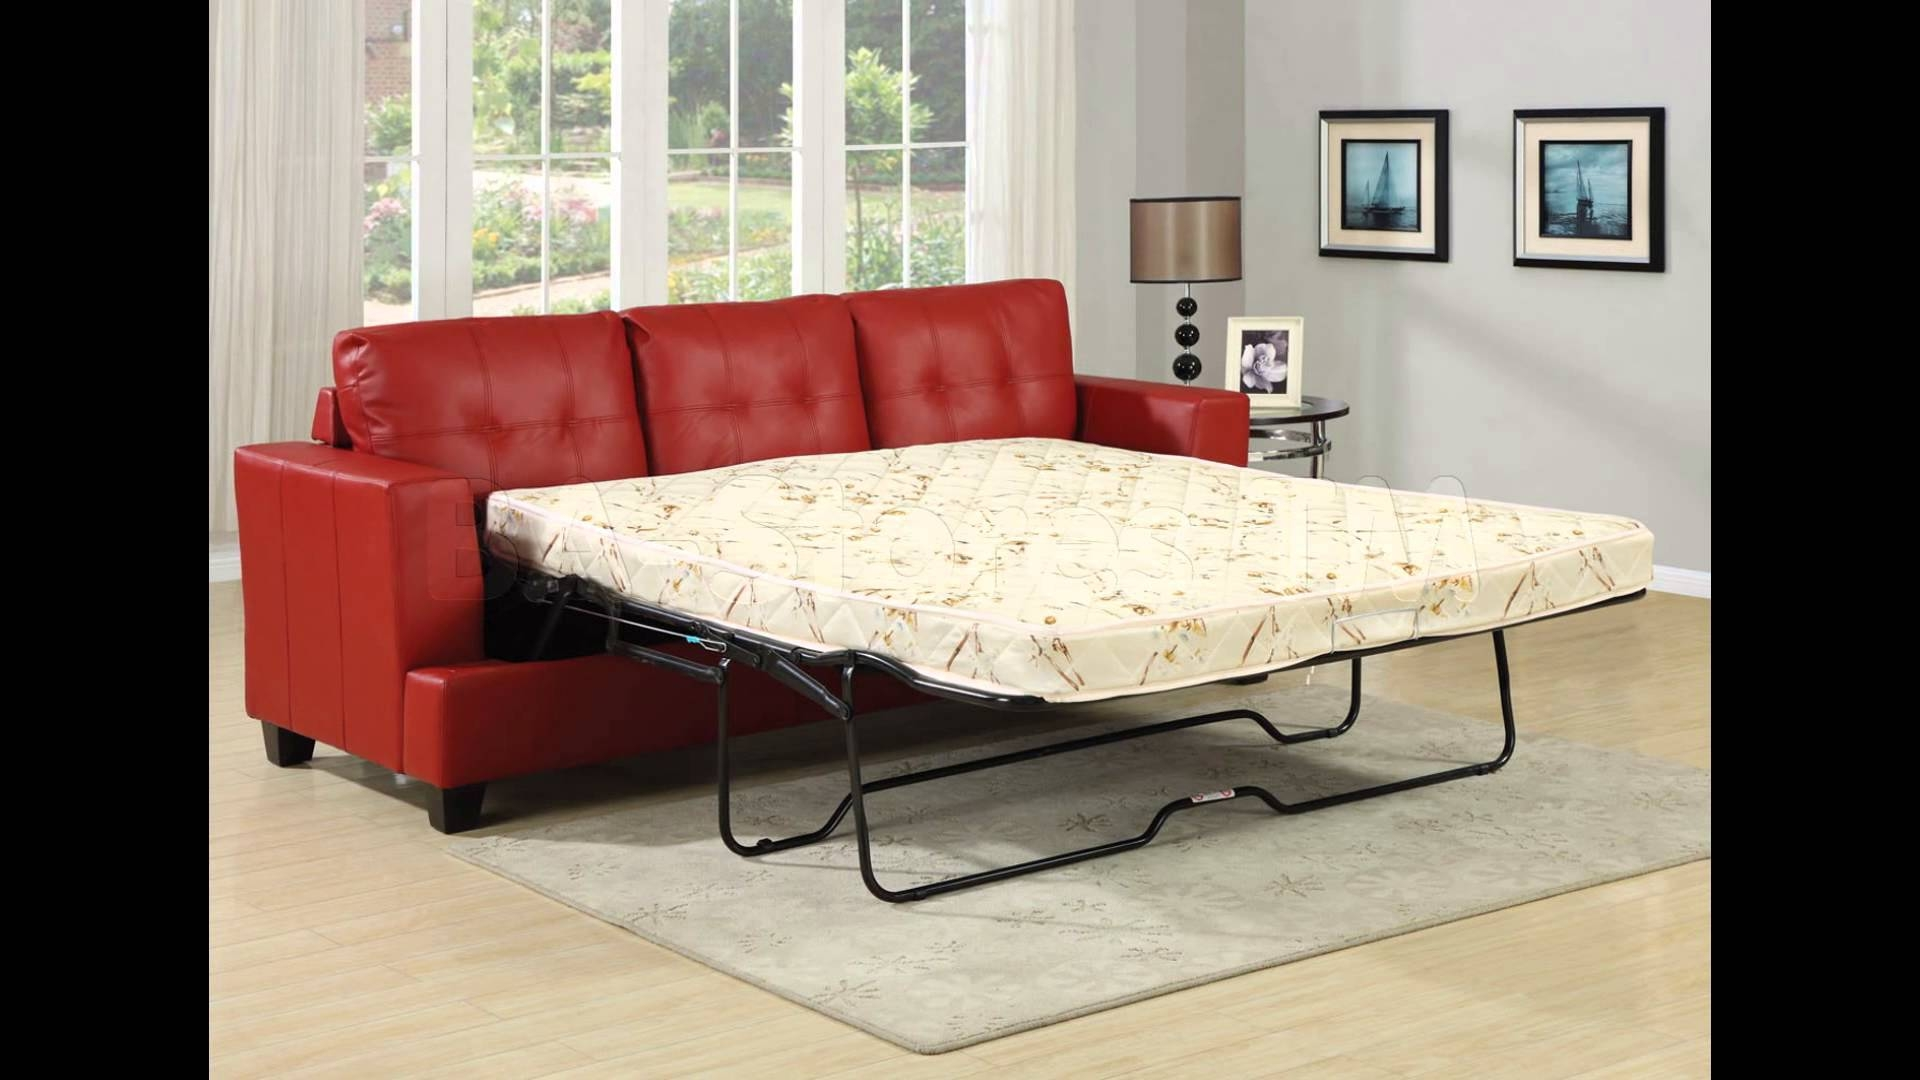 Sleeper Sofa | Sofa Sleeper | Sectional Sleeper Sofa - Youtube in Red Sleeper Sofa (Image 27 of 30)